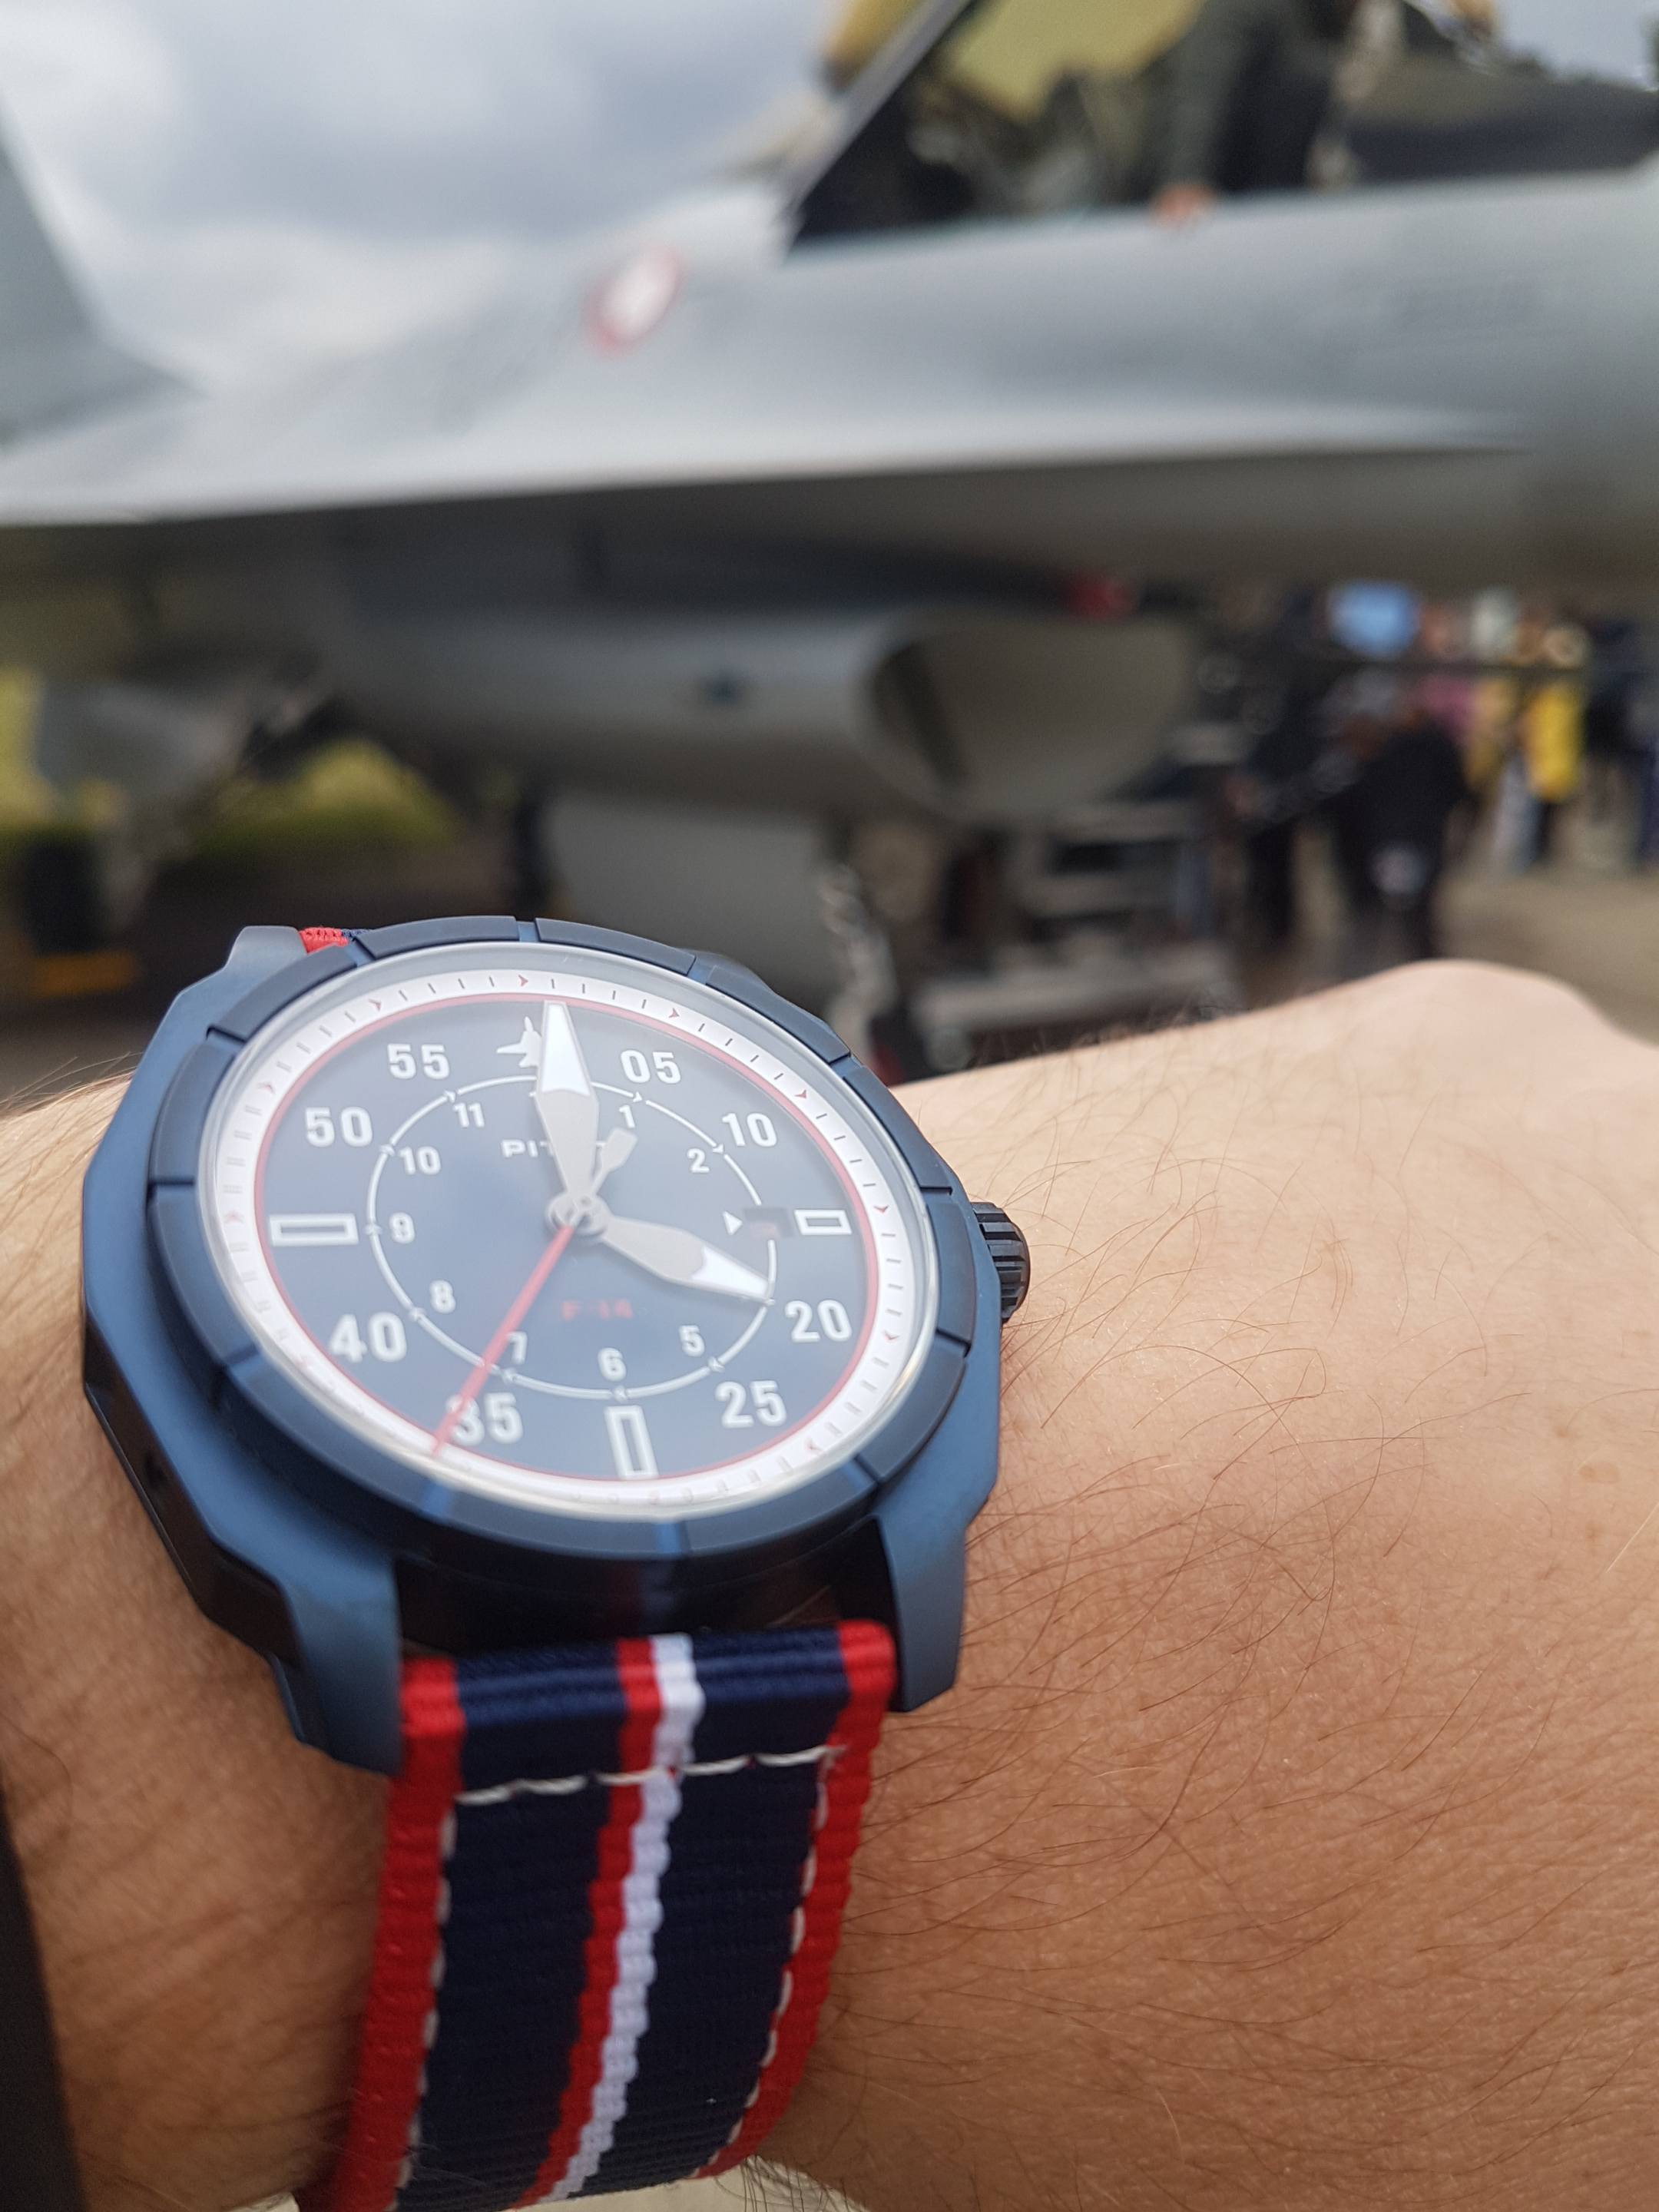 The Pitot F-14 collection comes in four different designs limited to 300 pieces each.